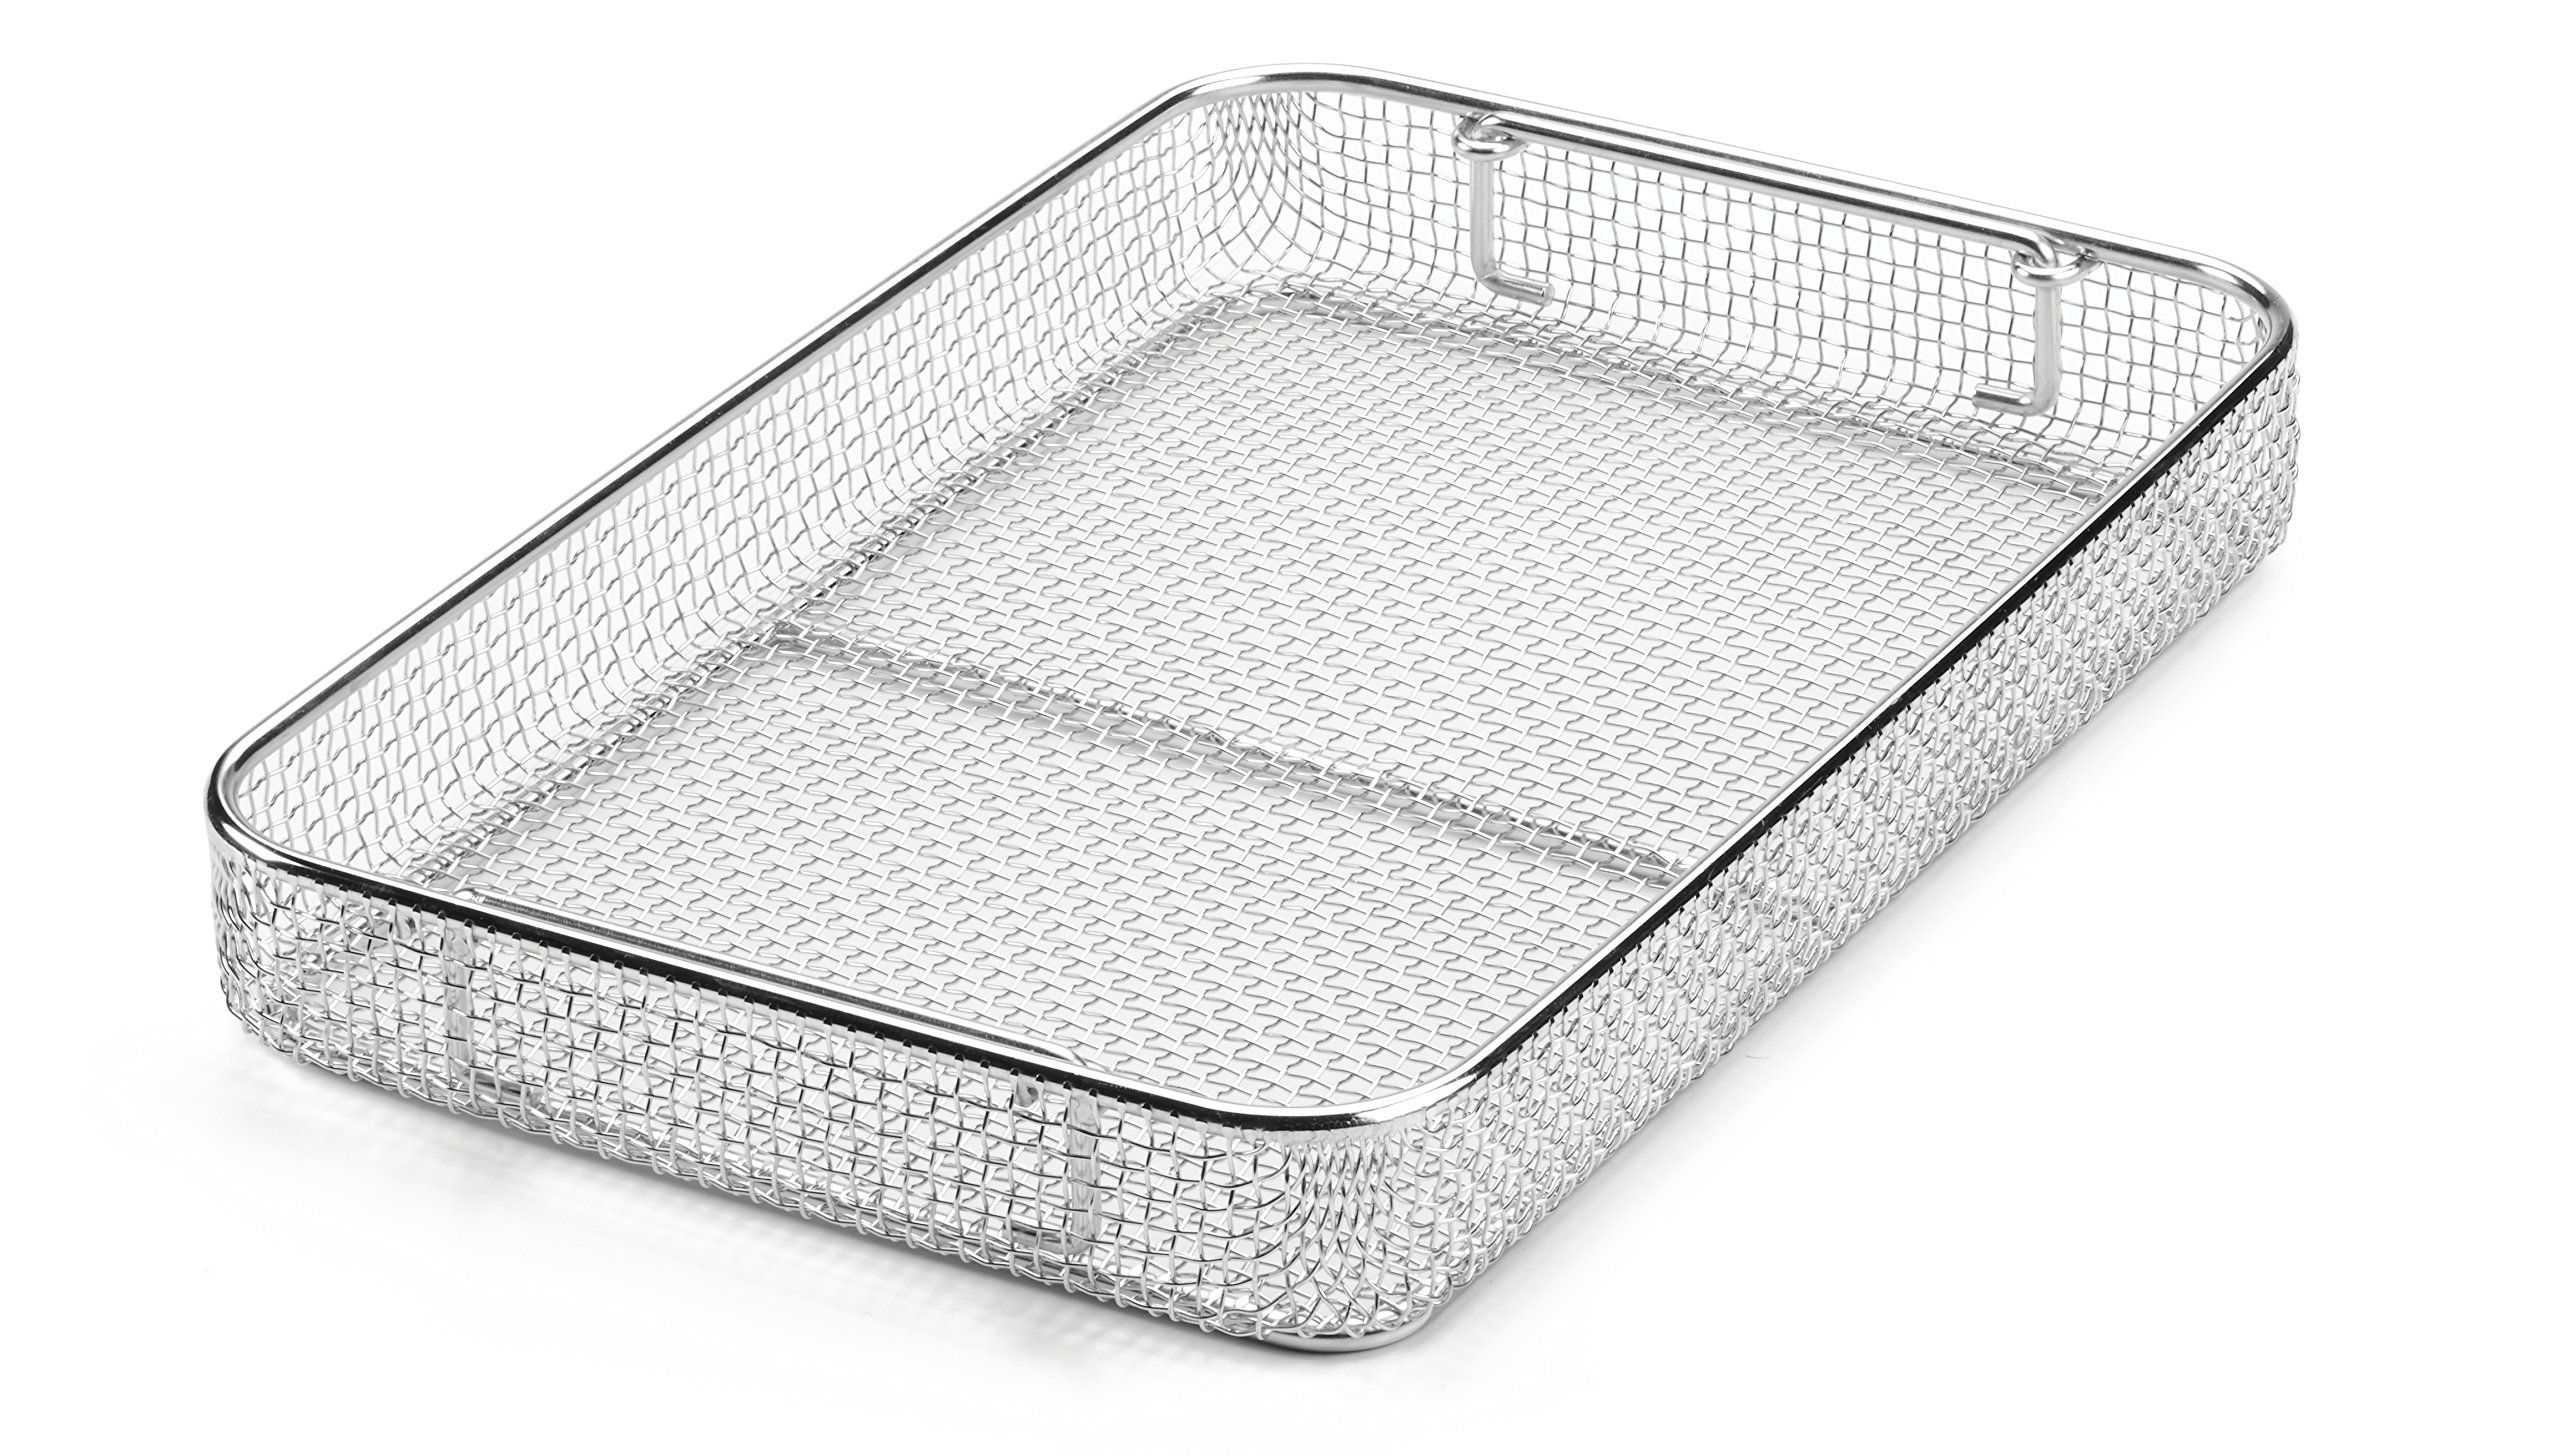 Key Surgical MT-8050 Mesh Tray with Drop Handles, Stainless Steel, 380 mm x 250 mm x 50 mm